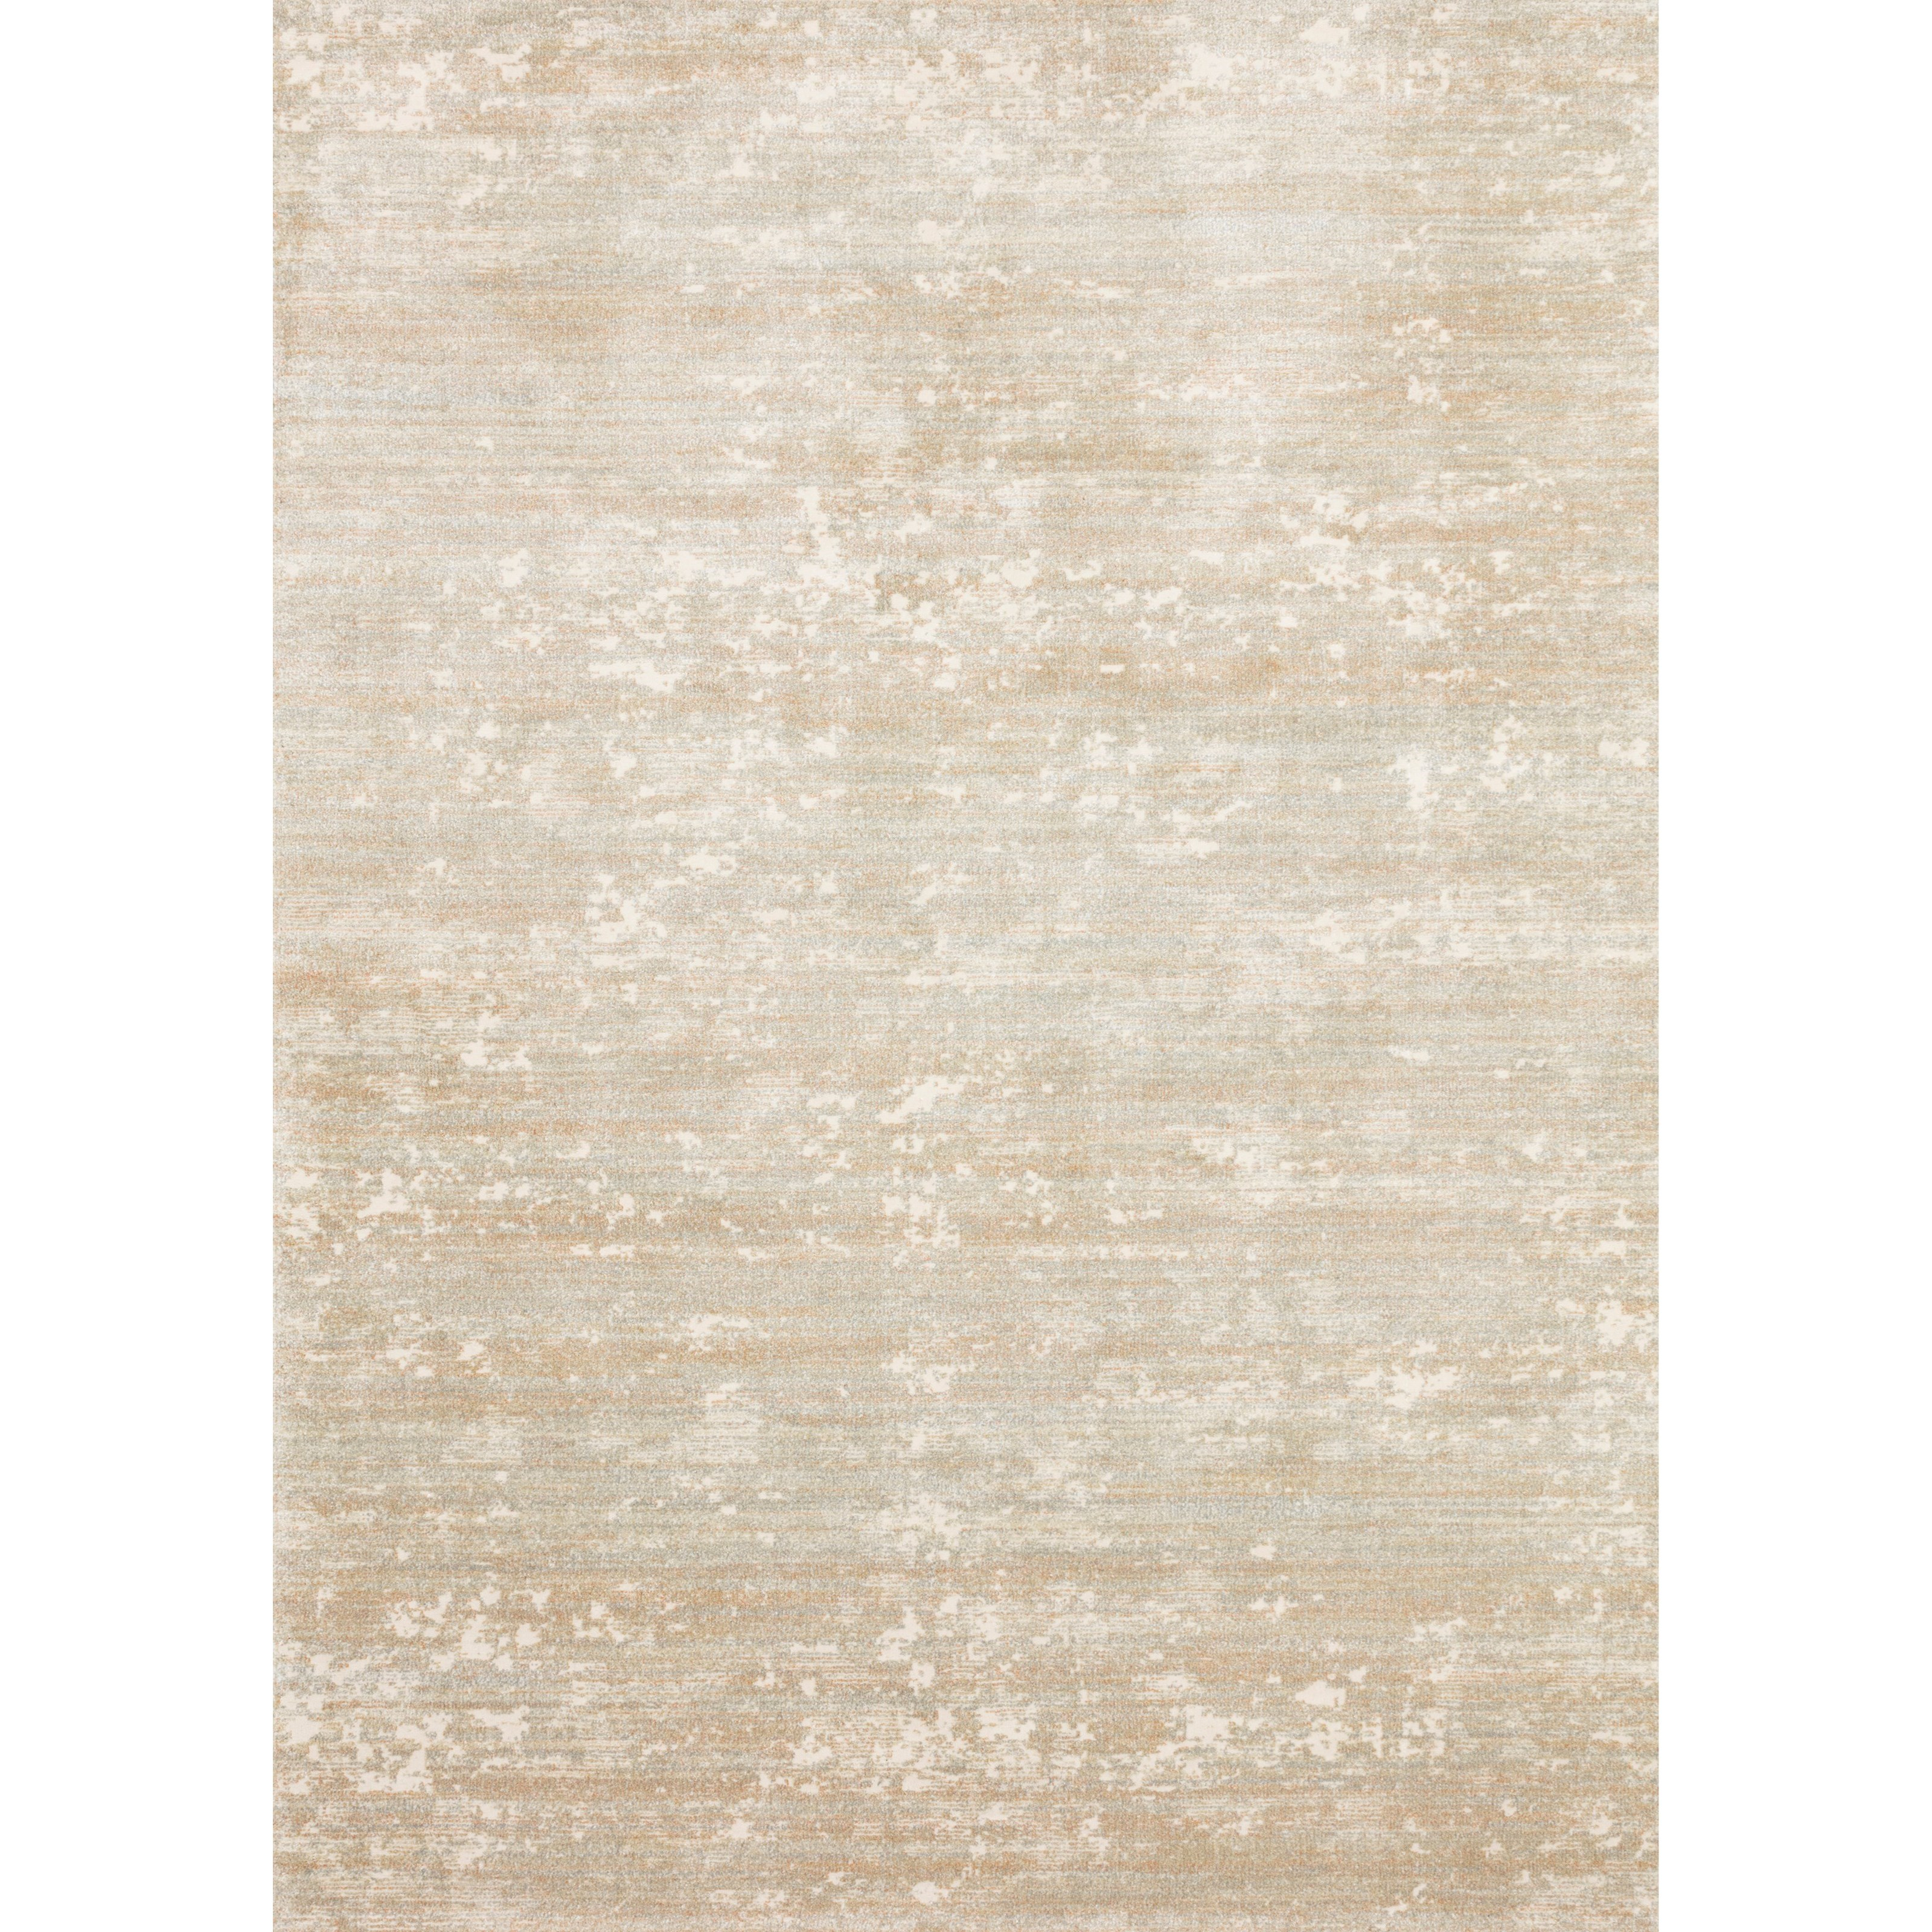 """Augustus 2'7"""" x 10'10"""" Sunset / Mist Rug by Loloi Rugs at Virginia Furniture Market"""